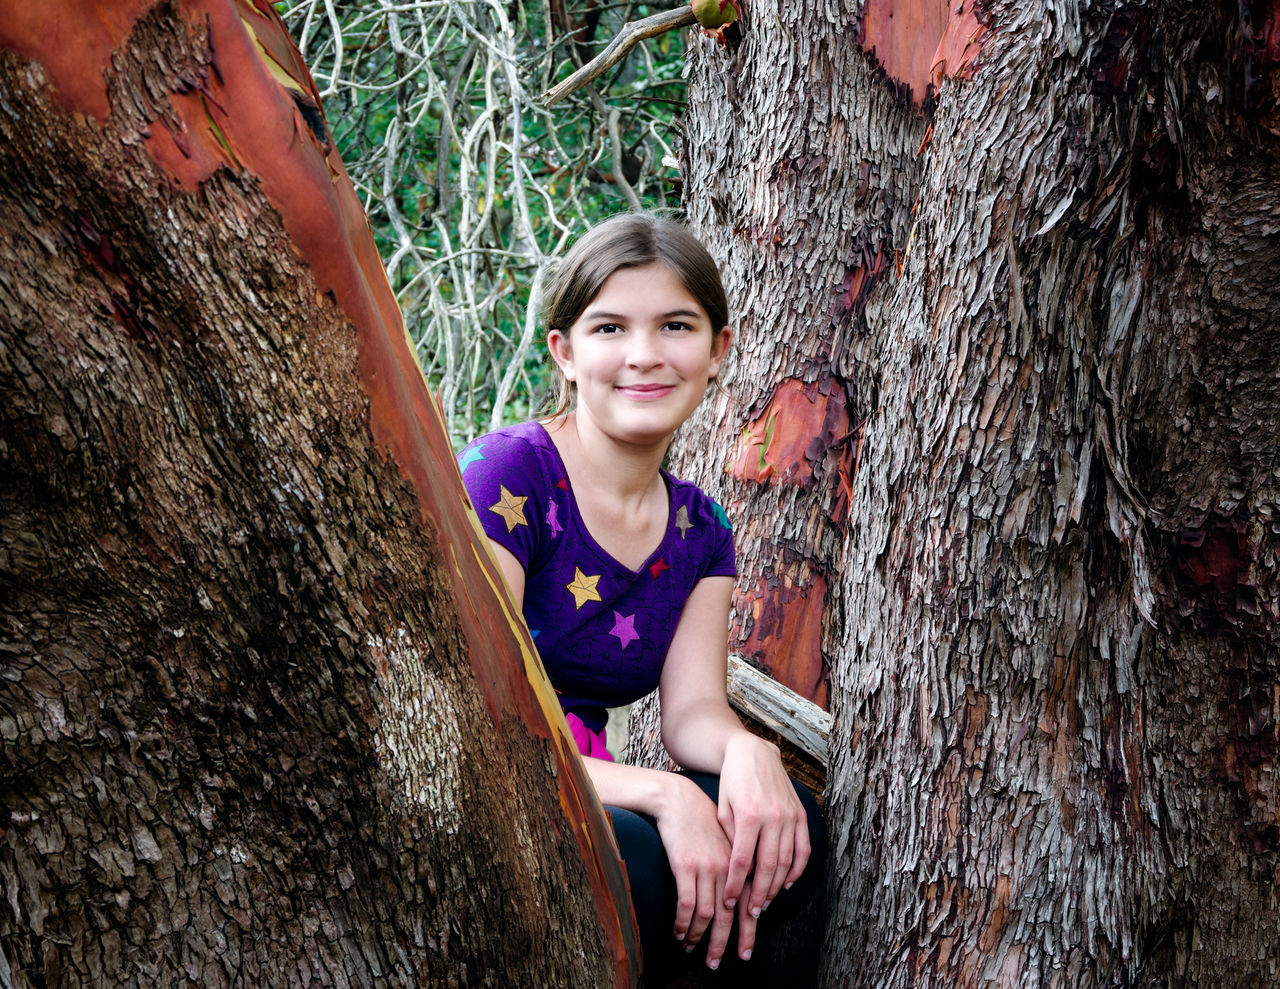 tree trunk, smiling, tree, looking at camera, young adult, rock - object, portrait, happiness, young women, day, rock climbing, one person, outdoors, leisure activity, real people, sitting, one young woman only, blond hair, rock face, climbing, nature, people, adult, adults only